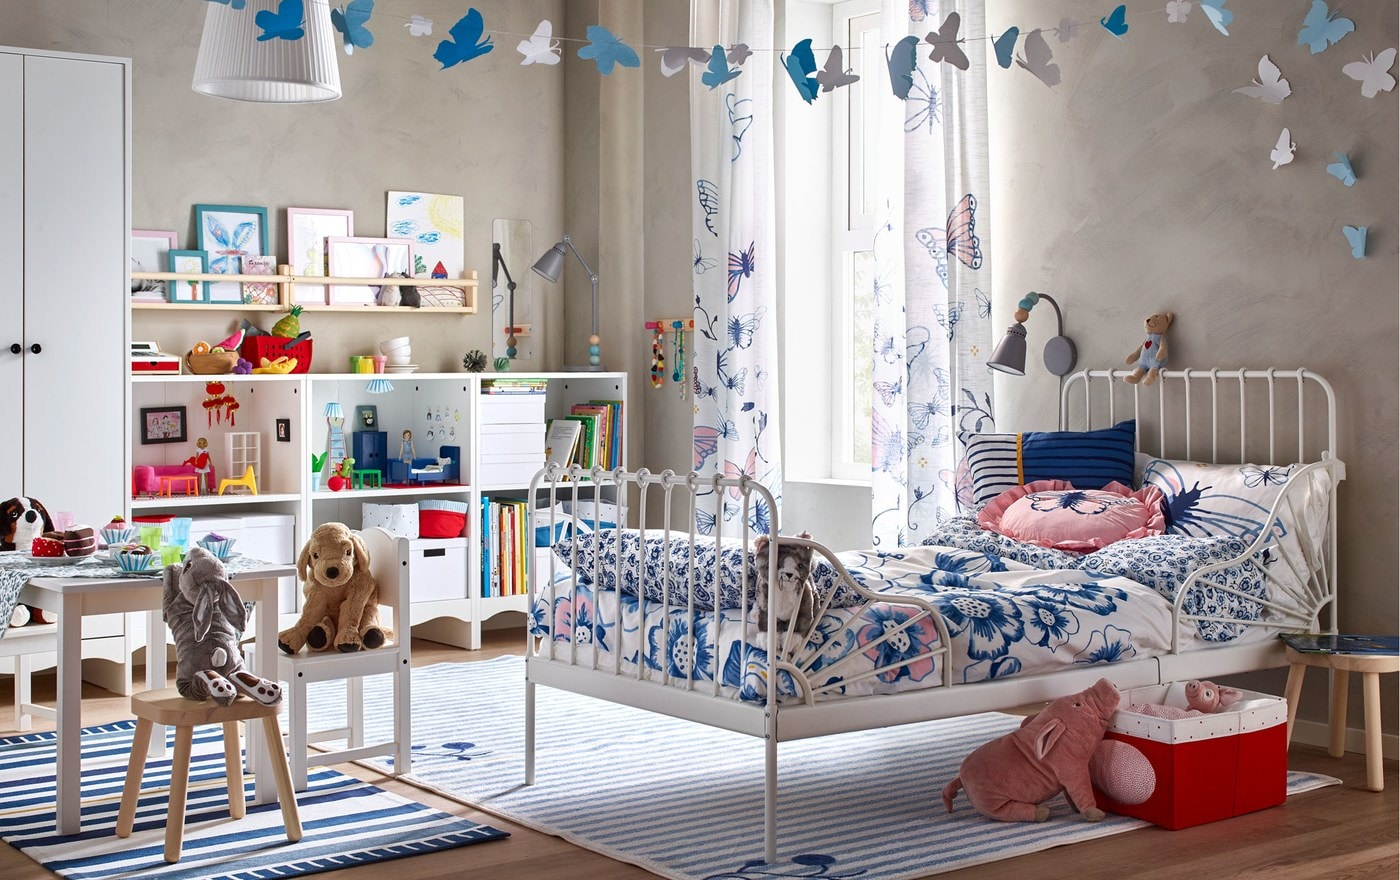 A large children's bedroom with a white bed frame and SÅNGLÄRKA floral bedsheets and curtains with blue and pink butterflies.